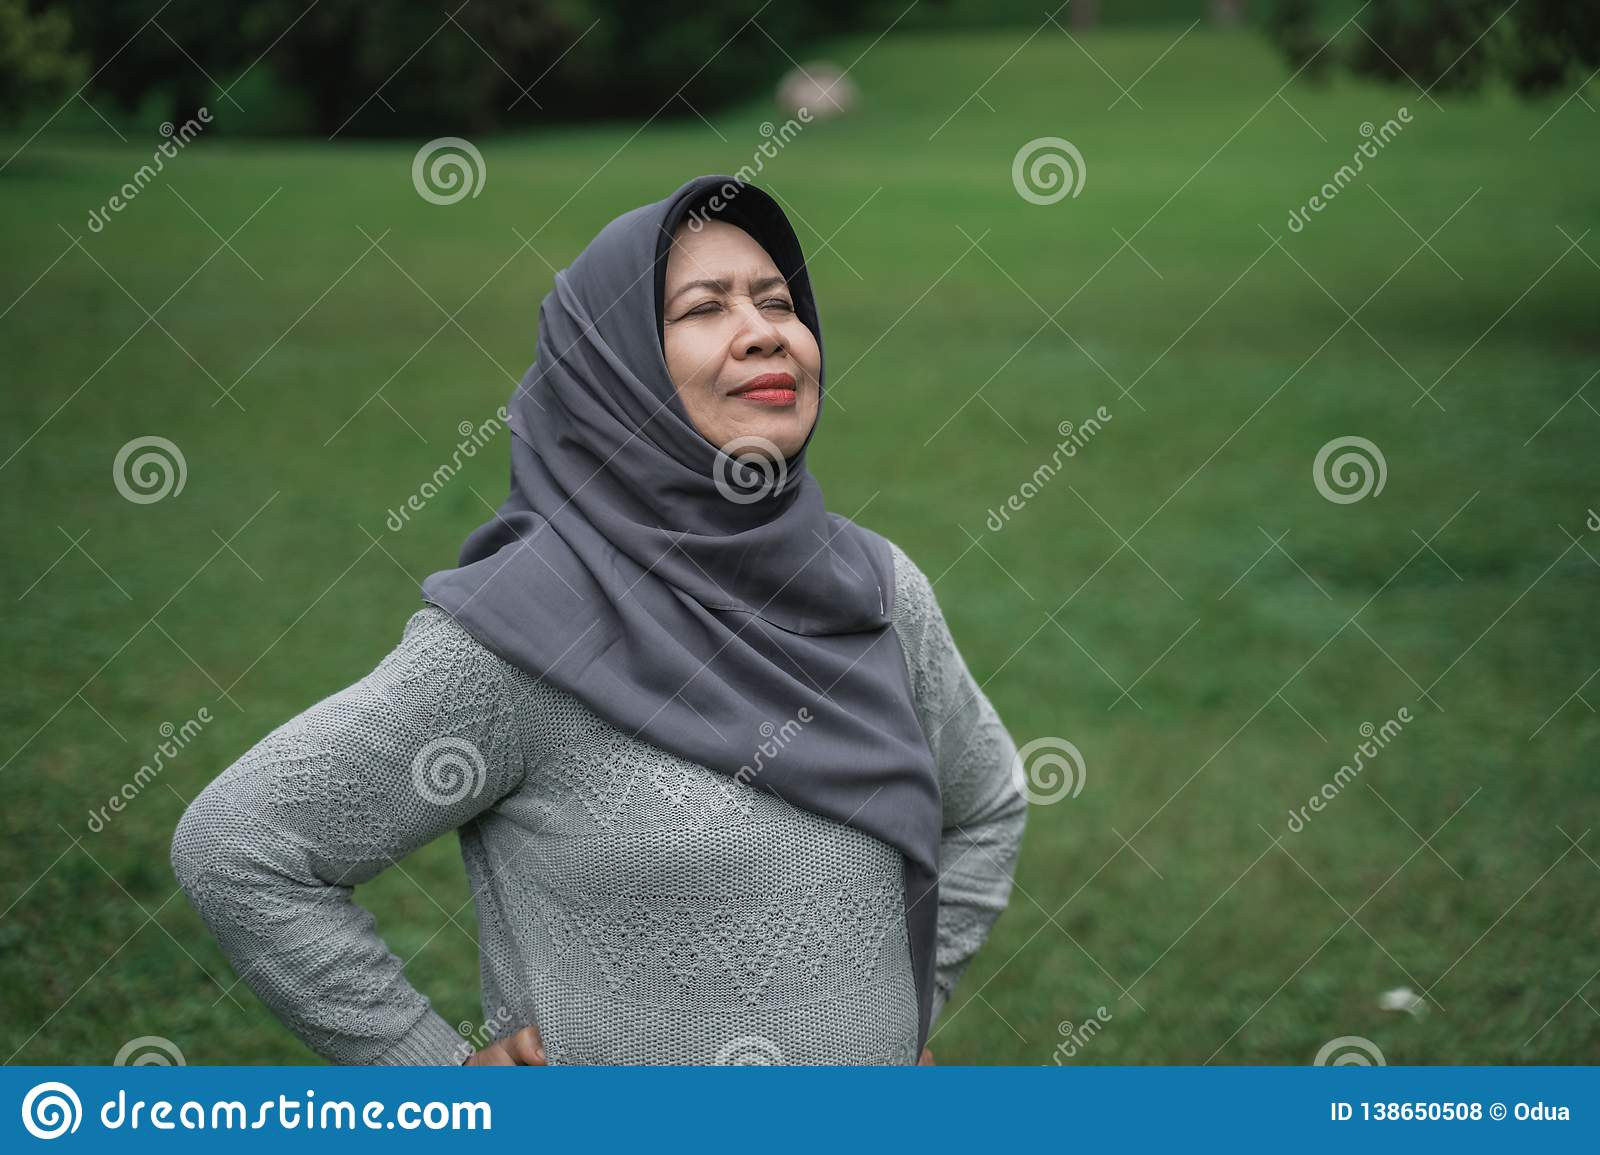 Enior muslim woman relaxing taking deep breath and stretching